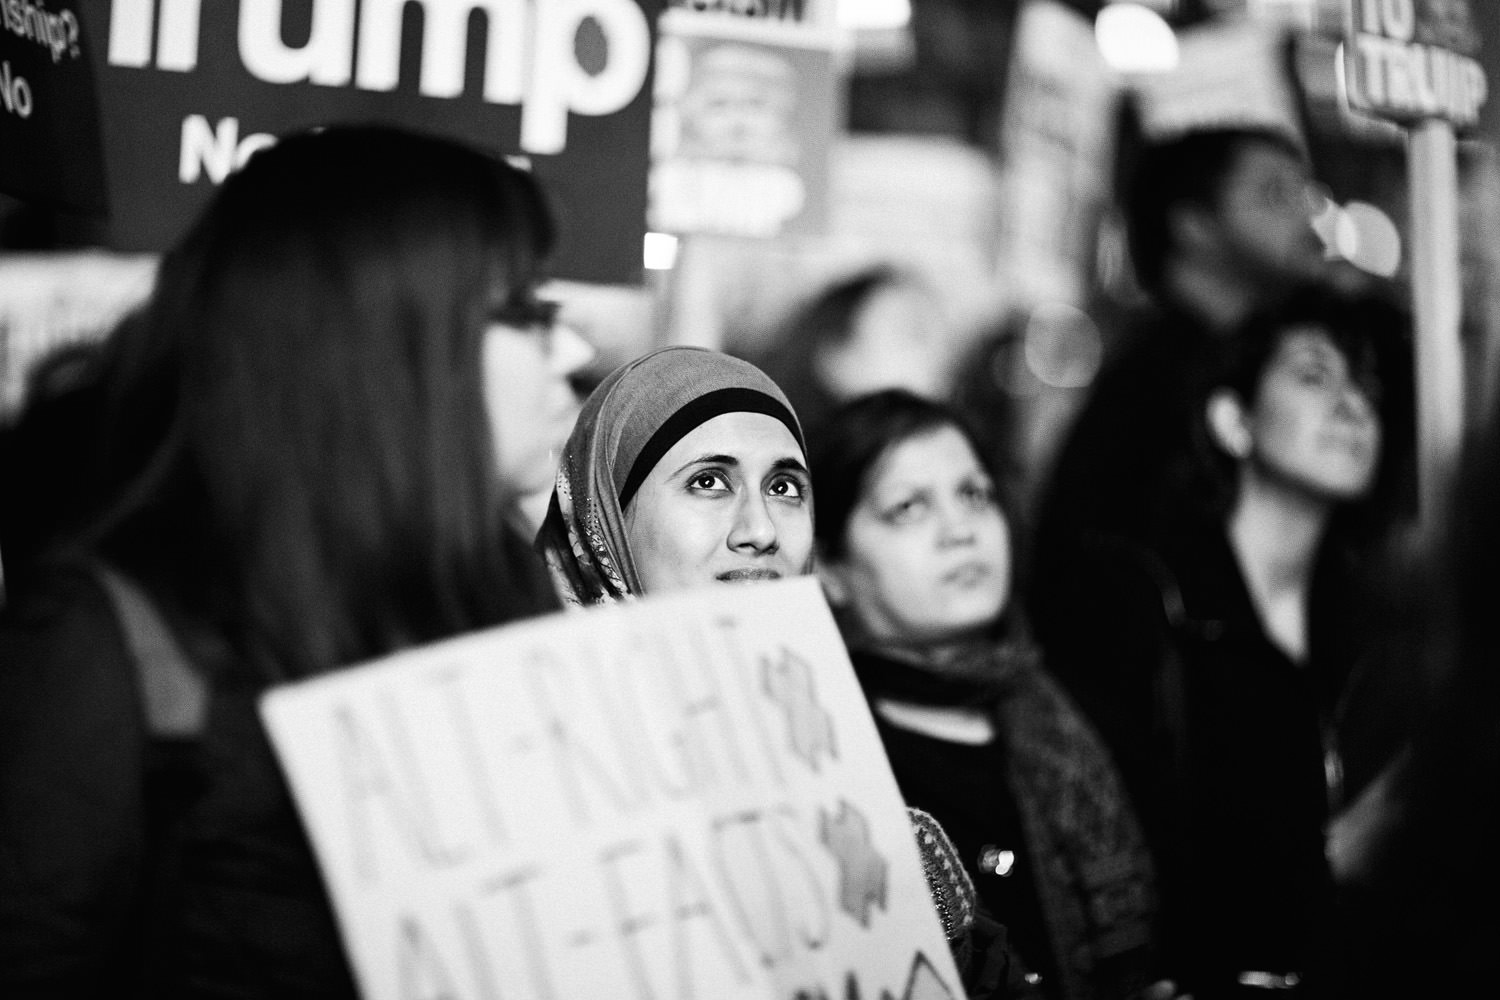 Muslim woman looking up at the march against Trump in London